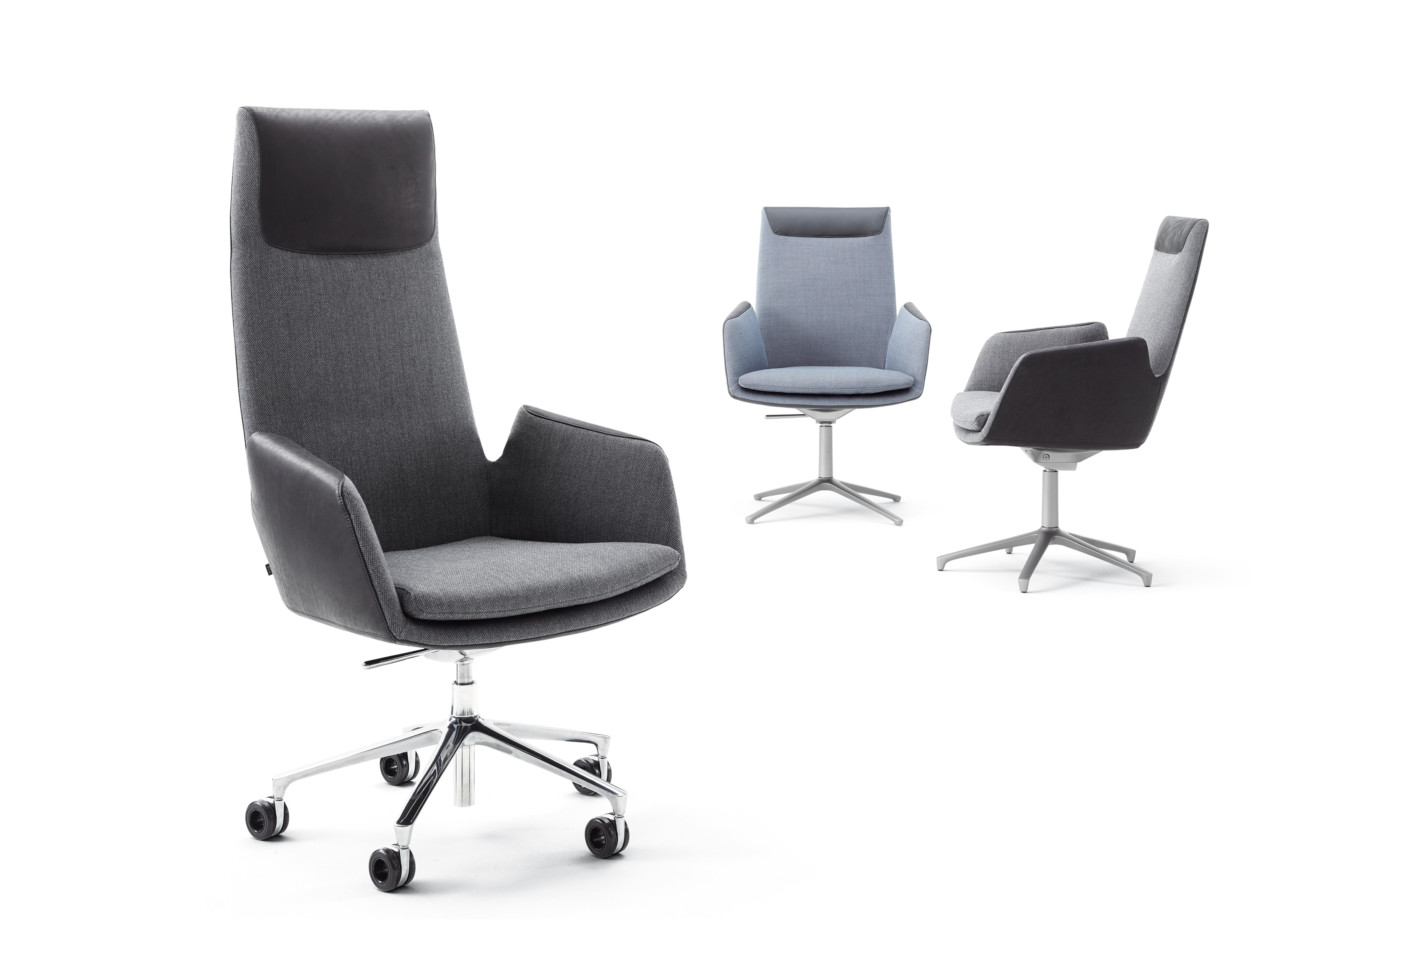 Cordia Plus Office Chairs by Jehs + Laub for COR